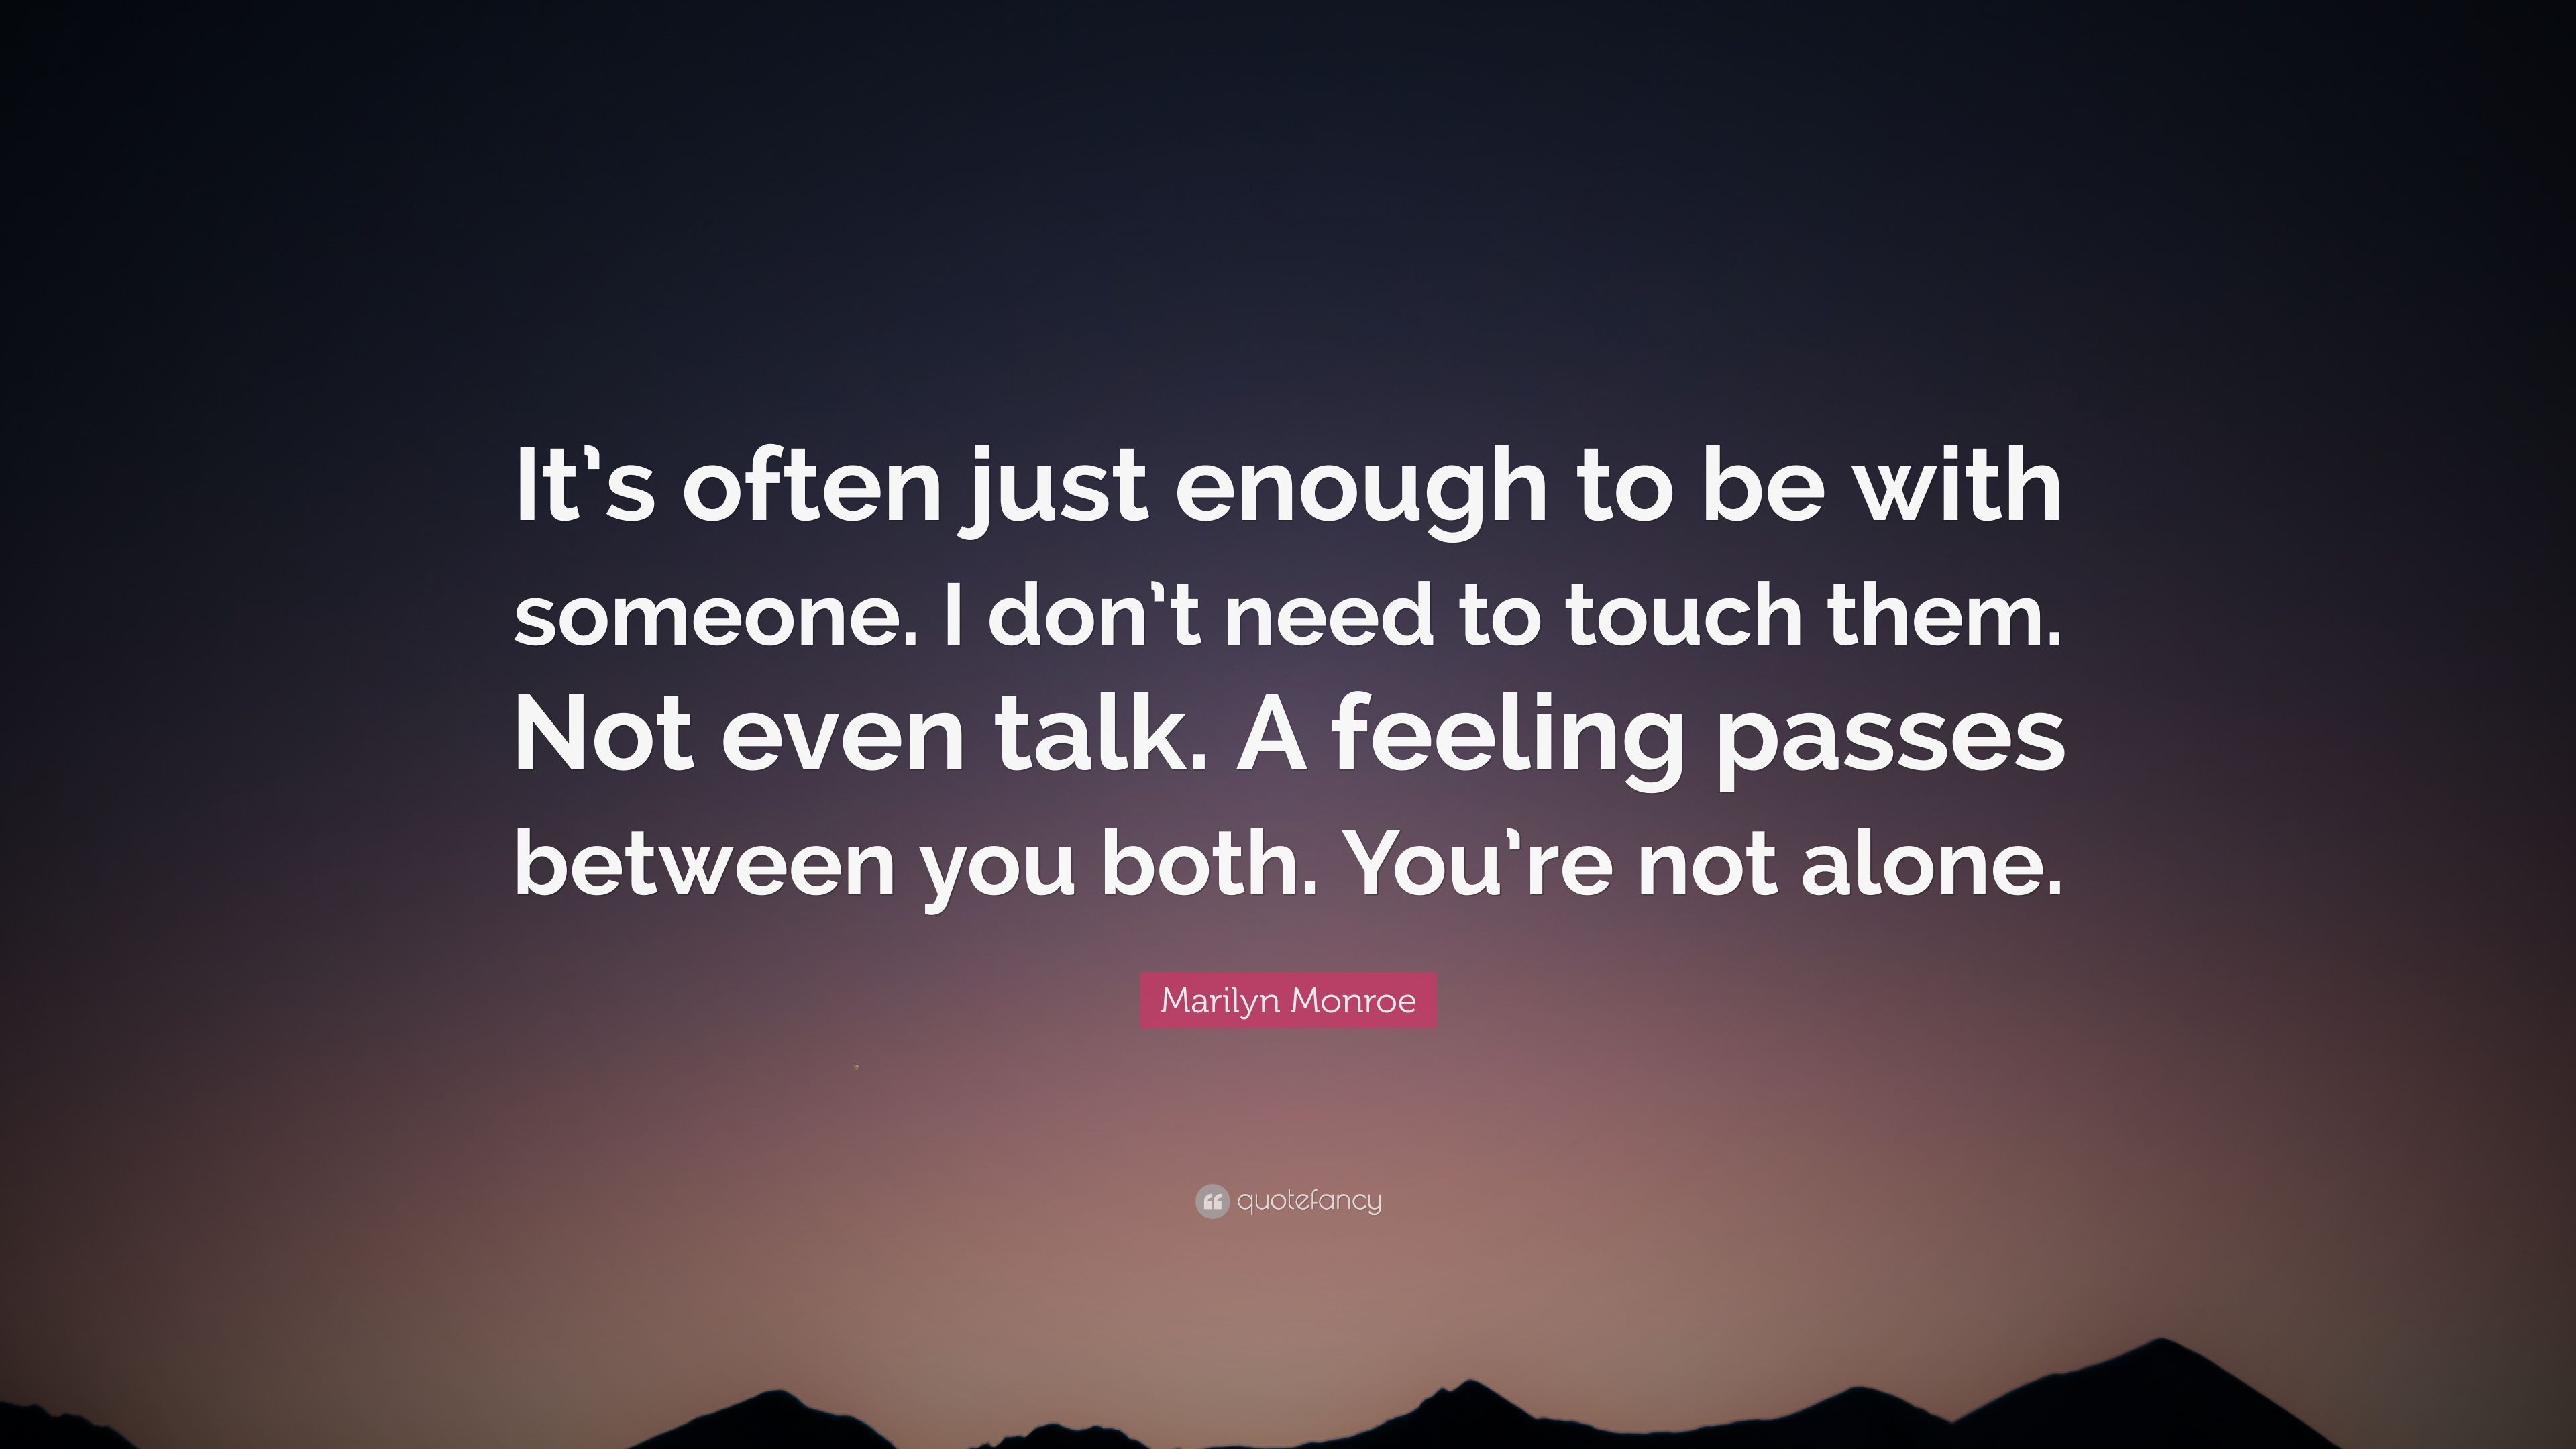 """Marilyn Monroe Quotes About Friendship Marilyn Monroe Quote """"It's Often Just Enough To Be With Someone"""